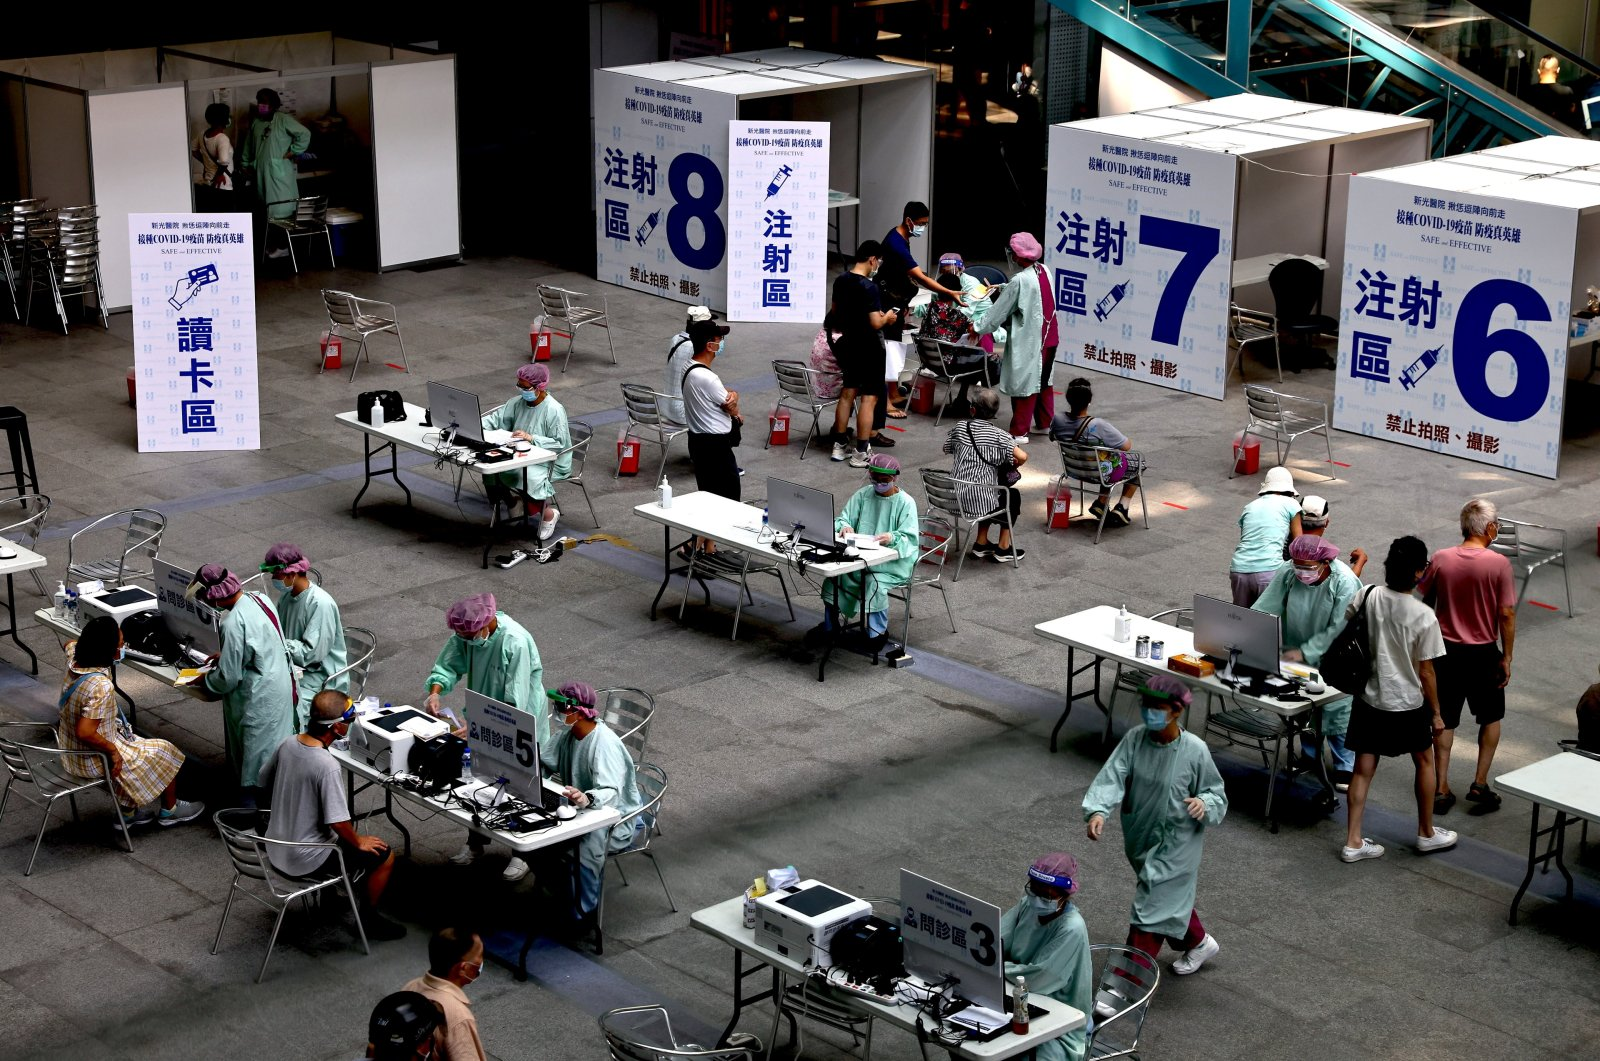 People wait to receive a dose of the Moderna vaccine at the National Taiwan Science Education Center in Taipei City, Taiwan, July 3, 2021. (Reuters Photo)